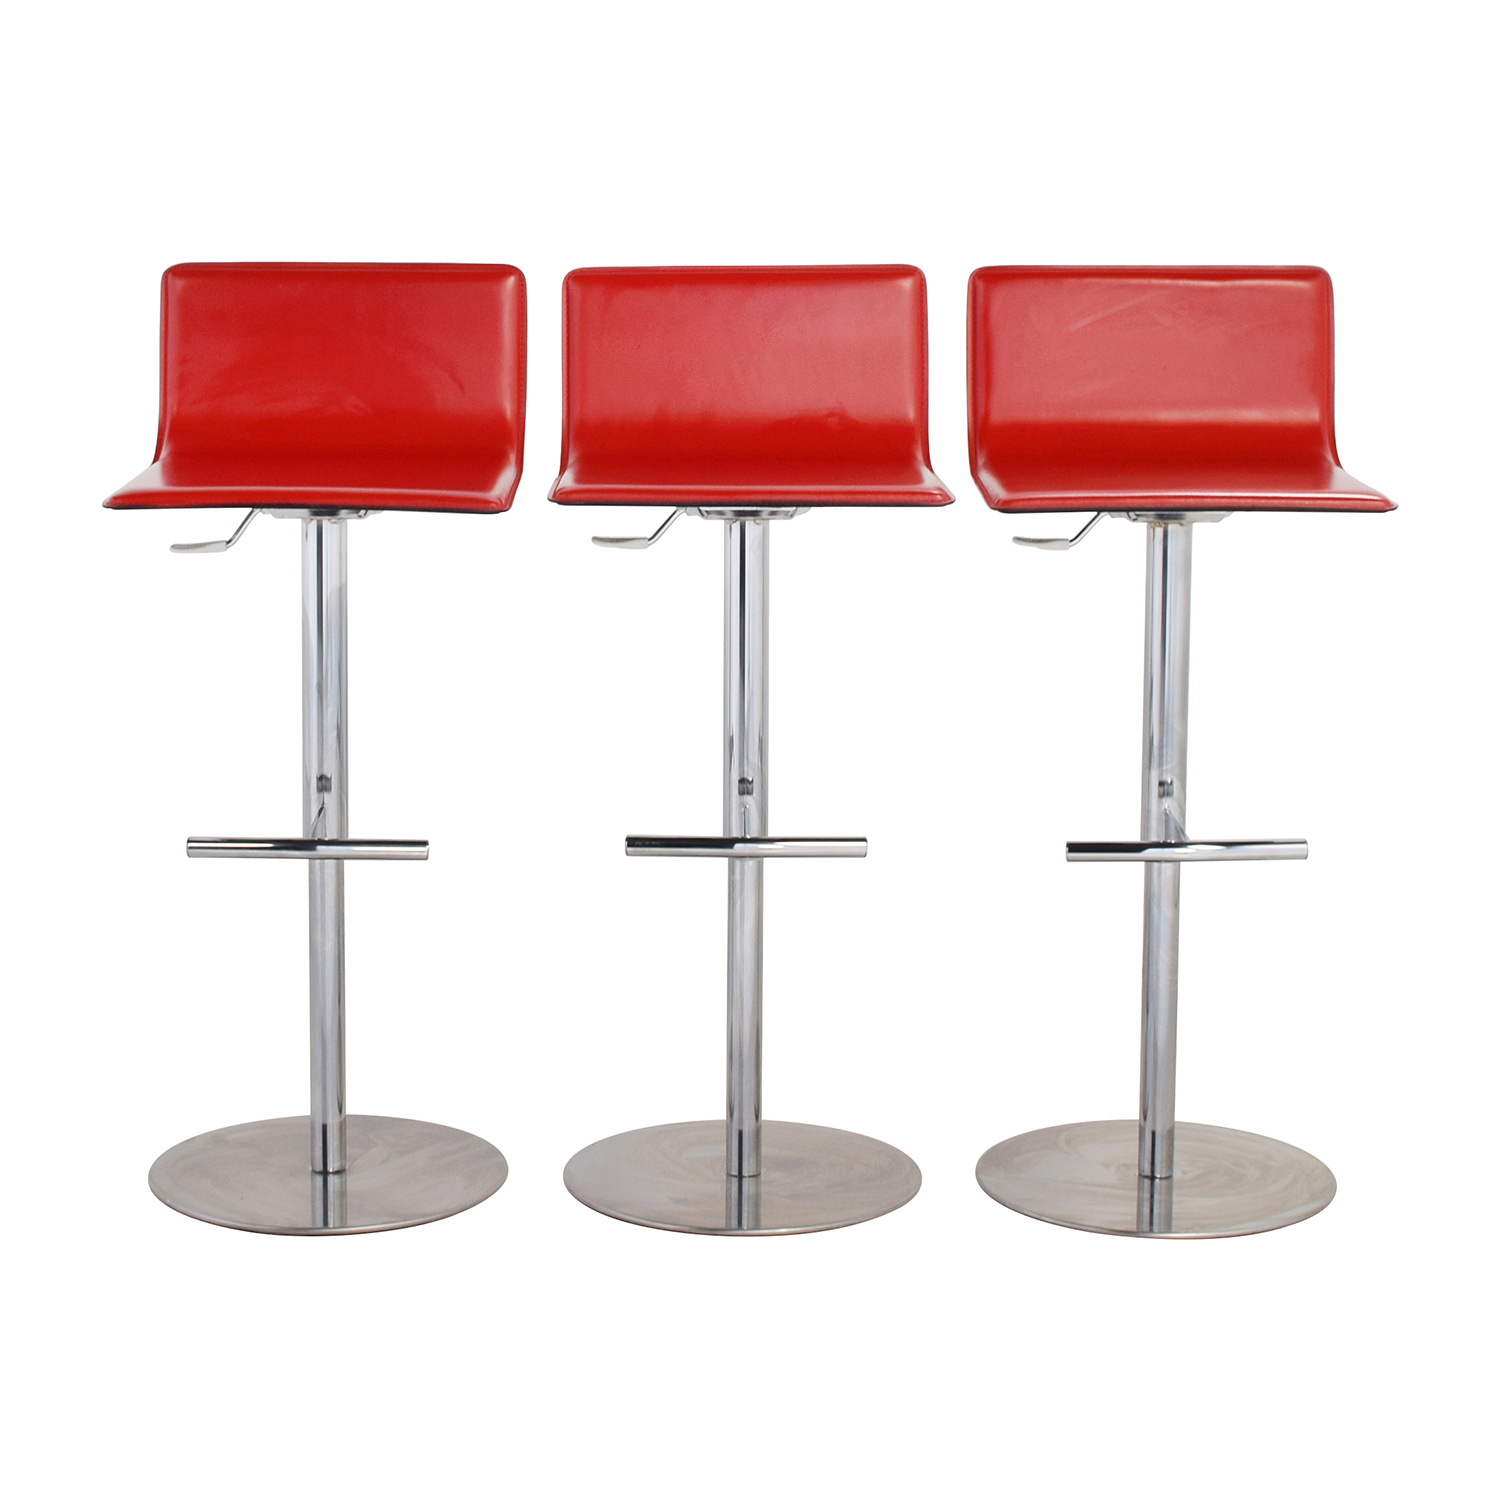 Trabaldo Trabaldo Italian Red Leather Adjustable Bar Stools Dimensions ...